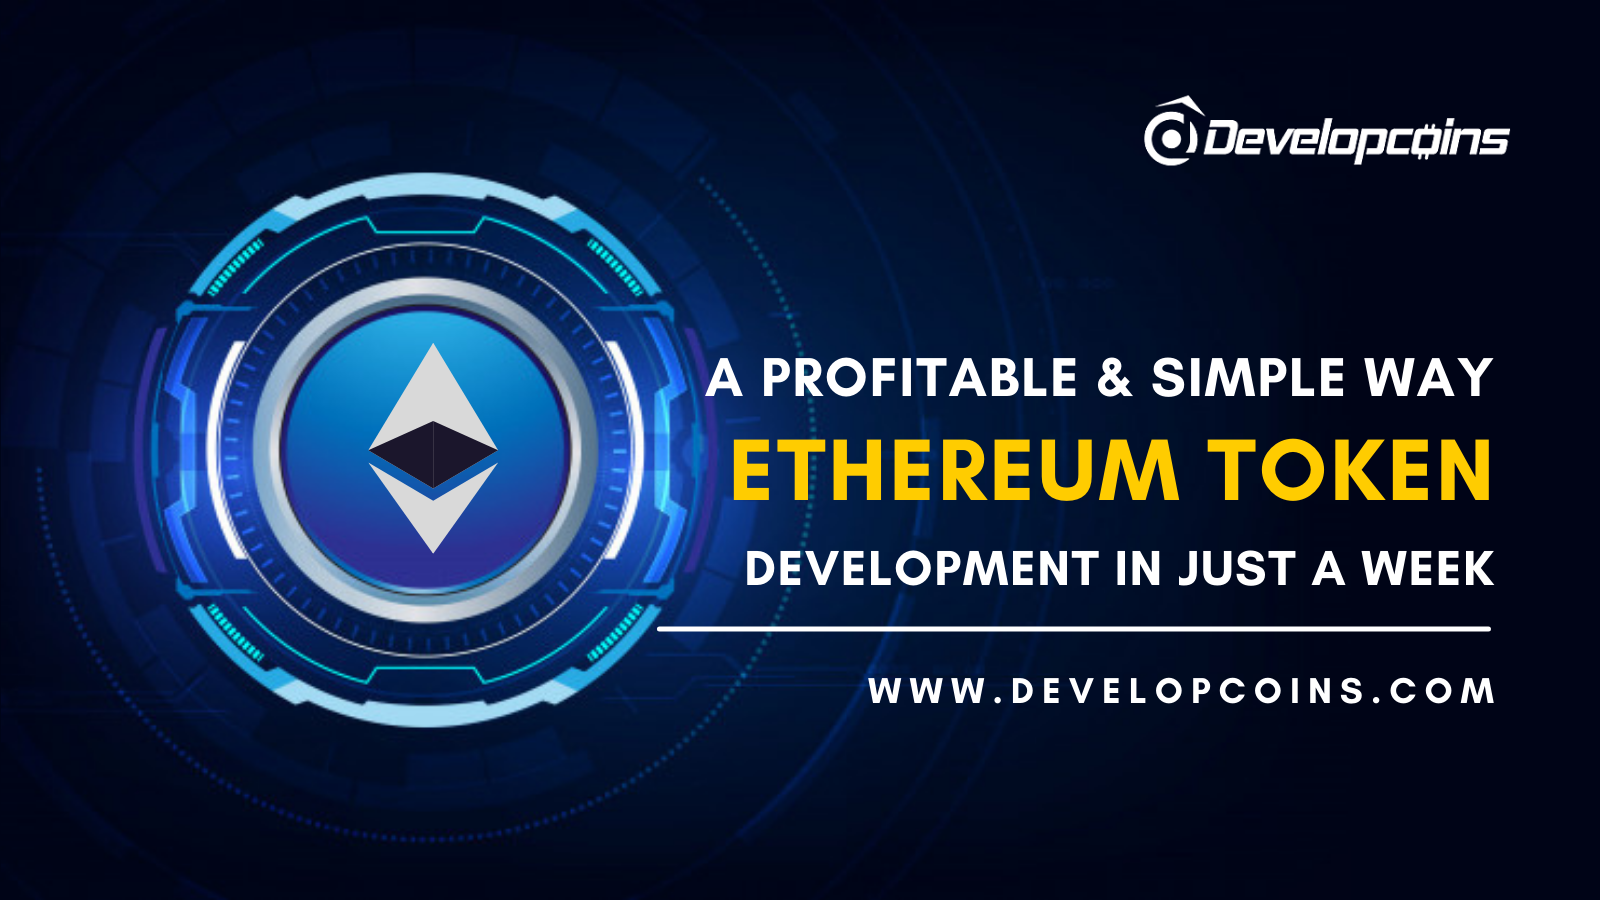 A Profitable And Simple Way For Ethereum Token Development In Just A Week!